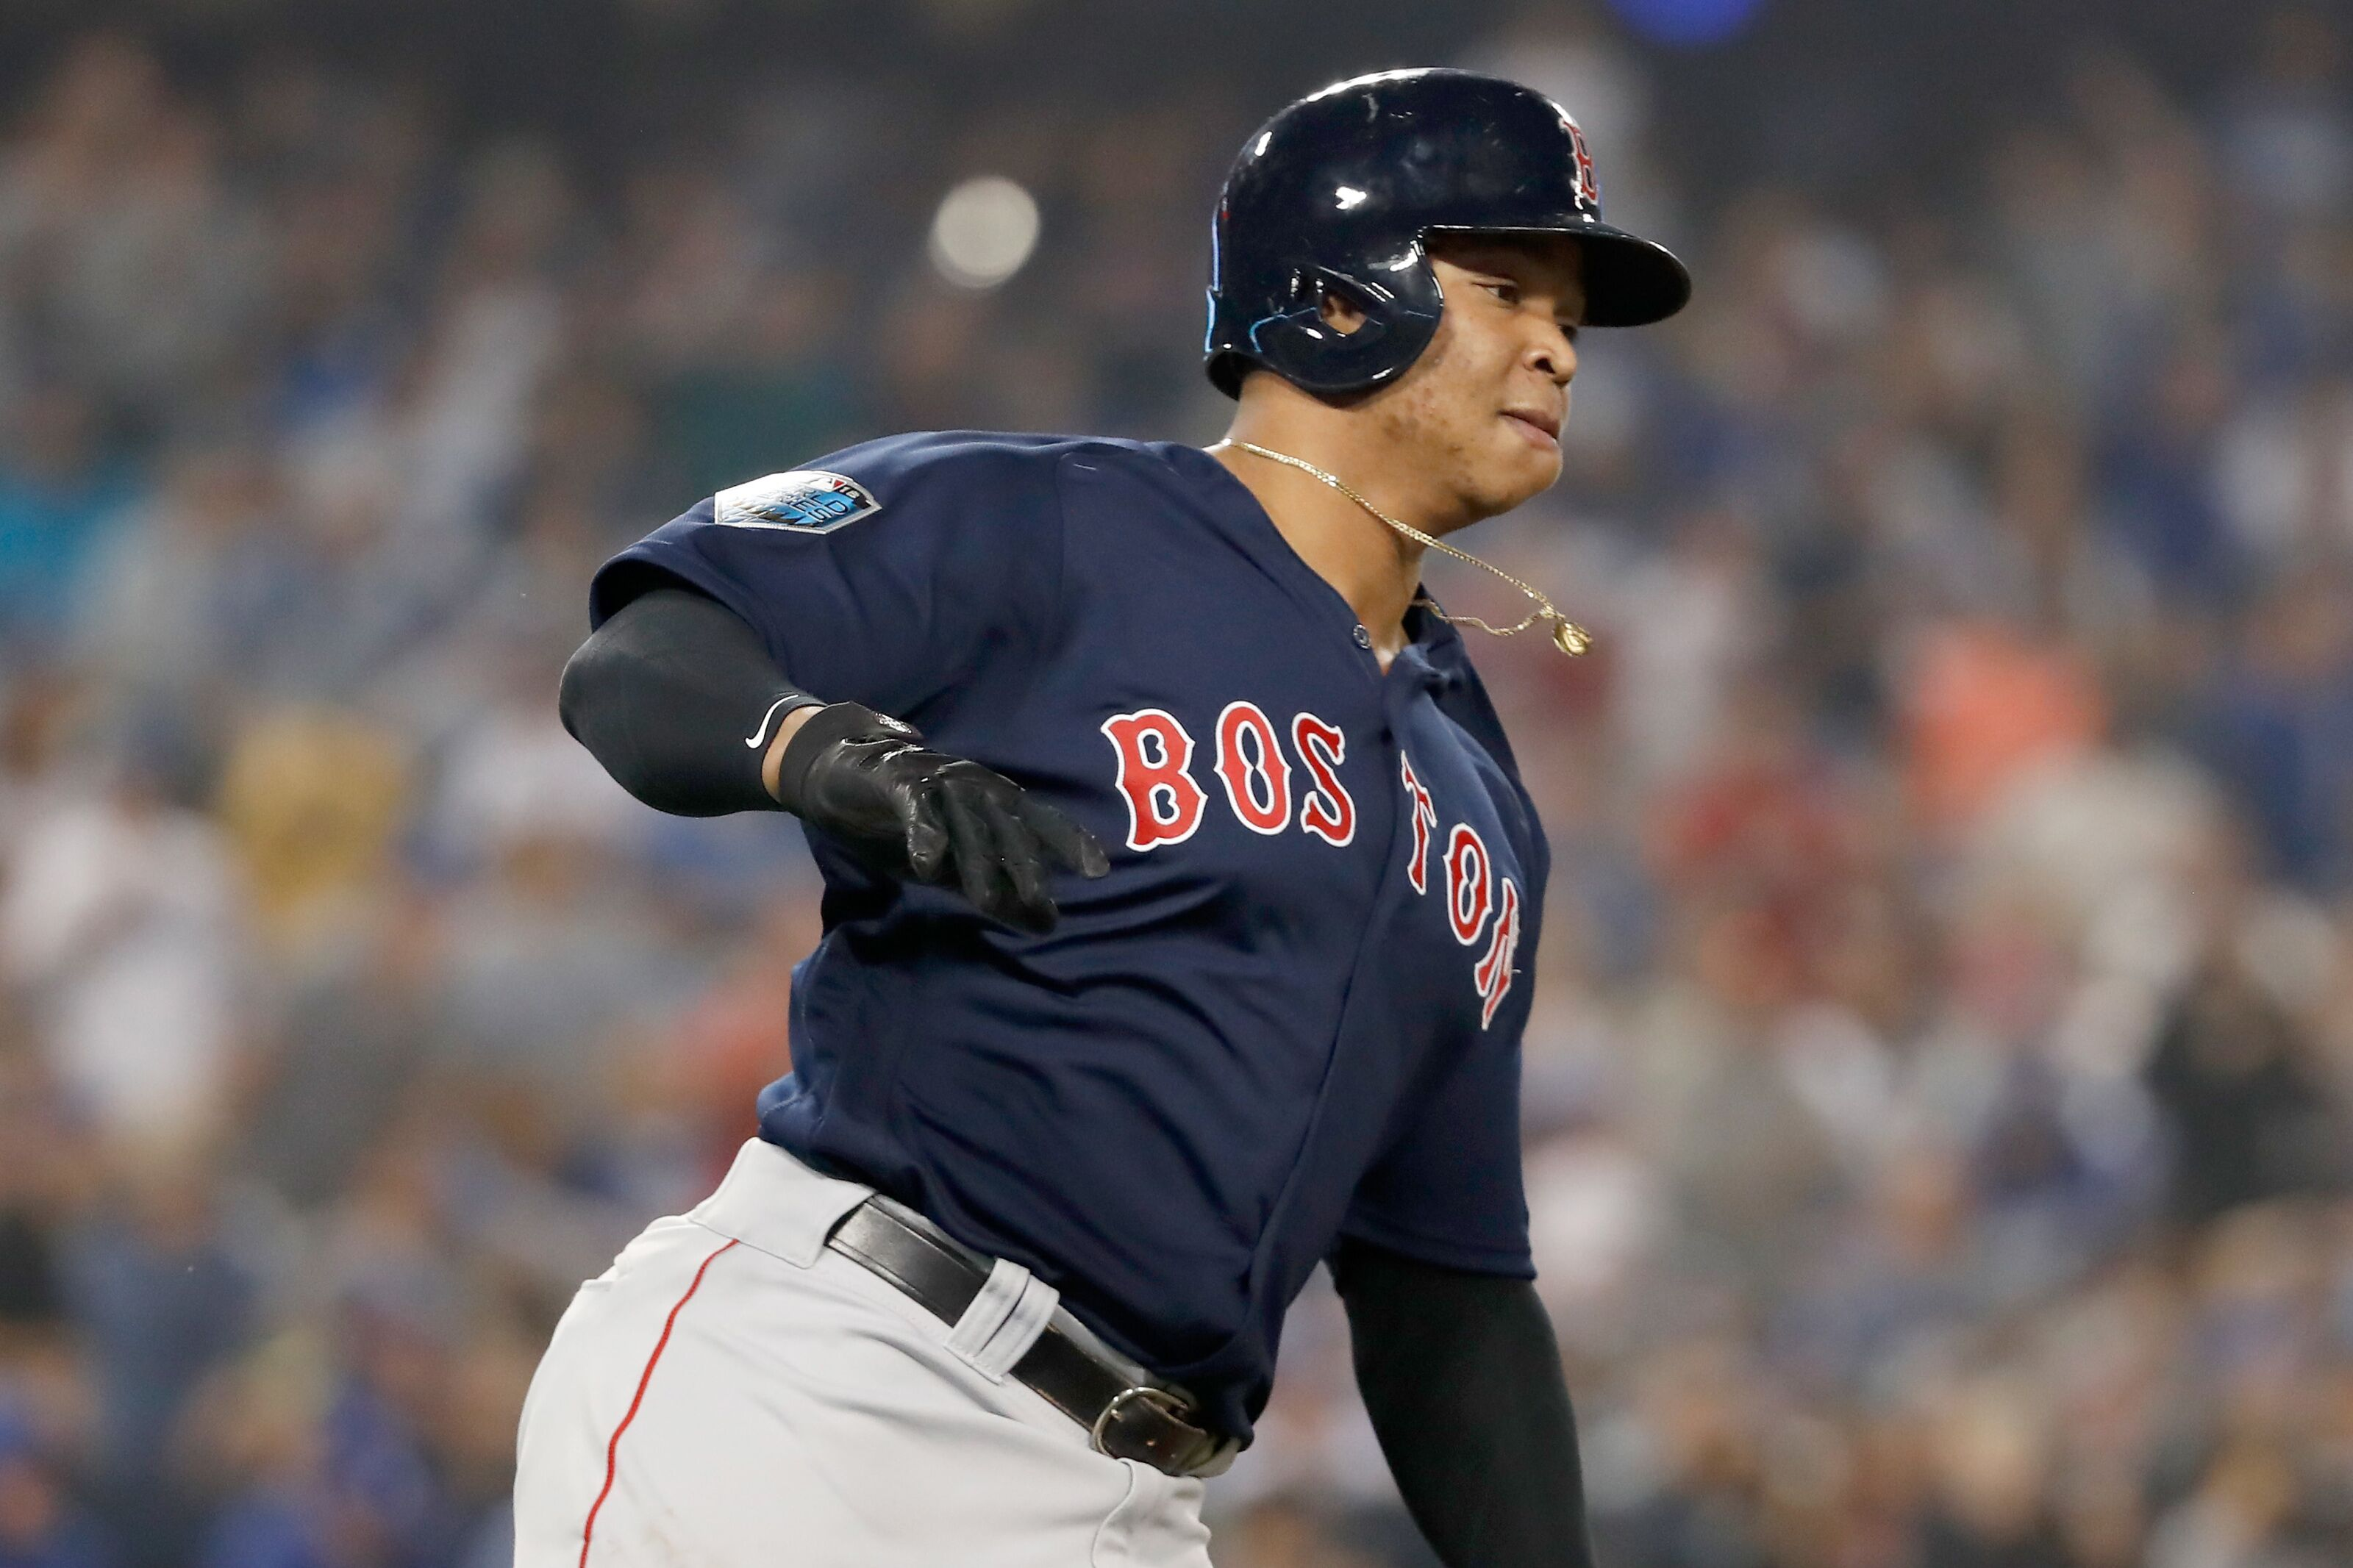 Red Sox World Series Game 4: Rafael Devers delivers game-winning RBI